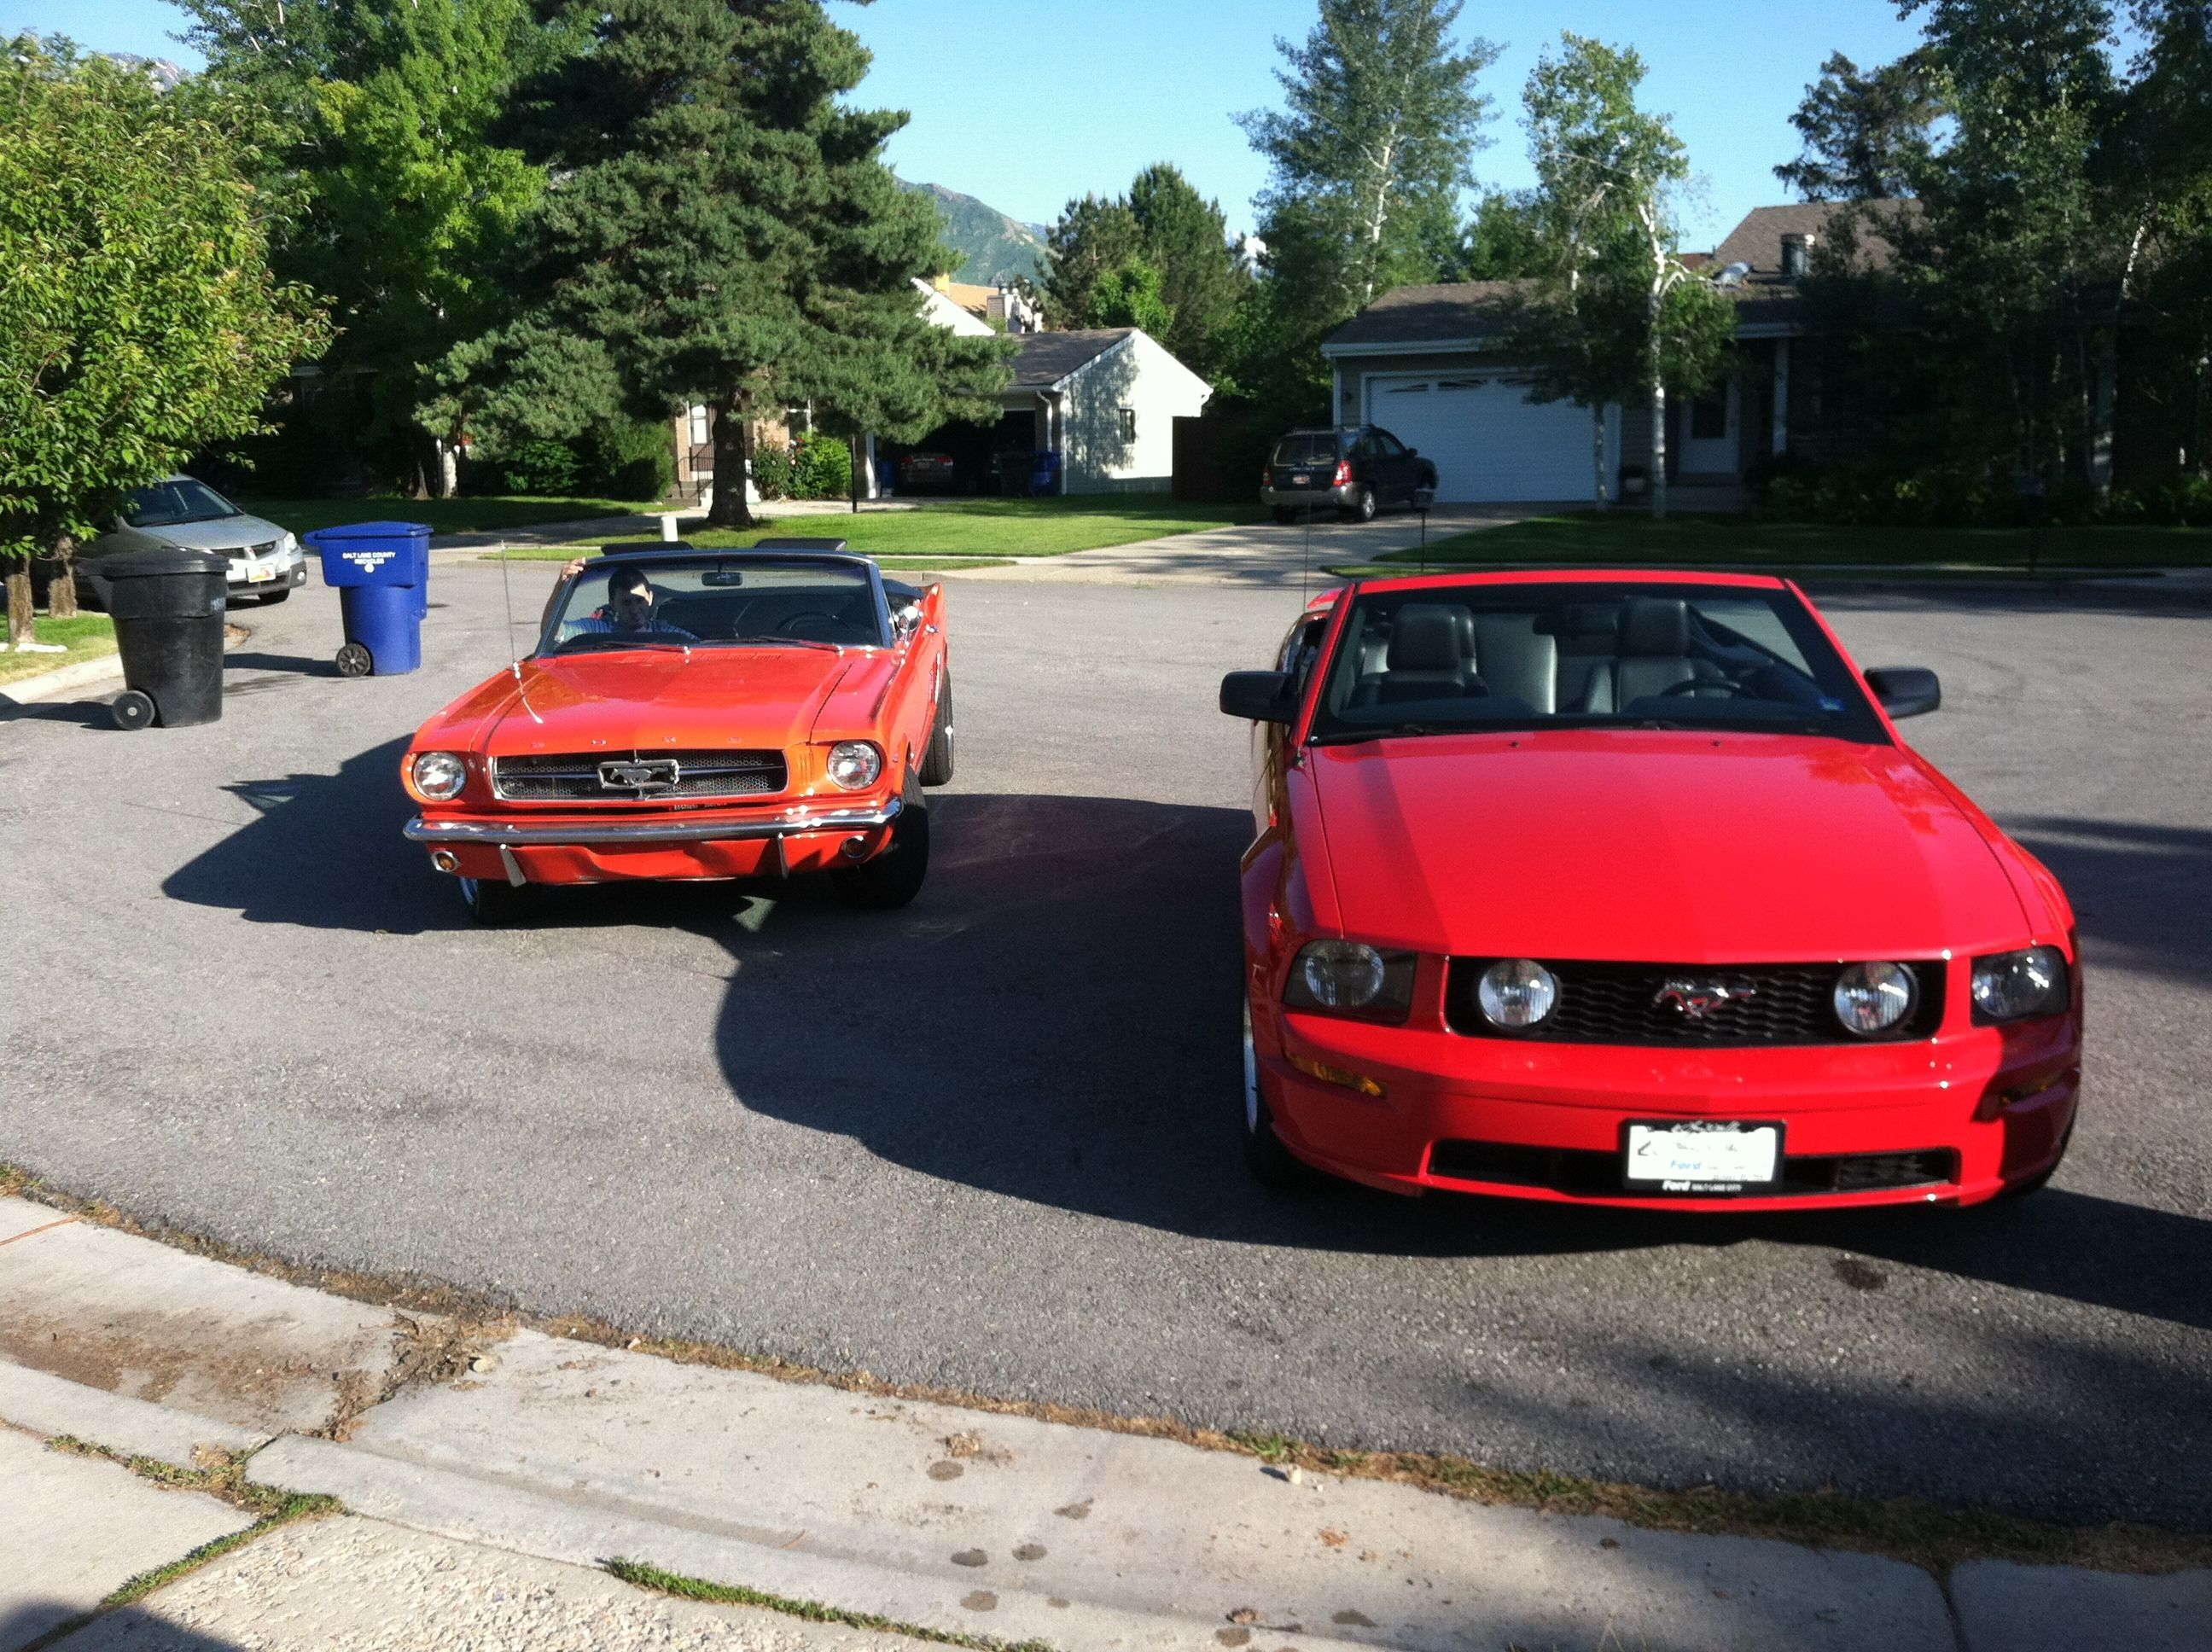 2006 Mustang GT and a 65 Mustang